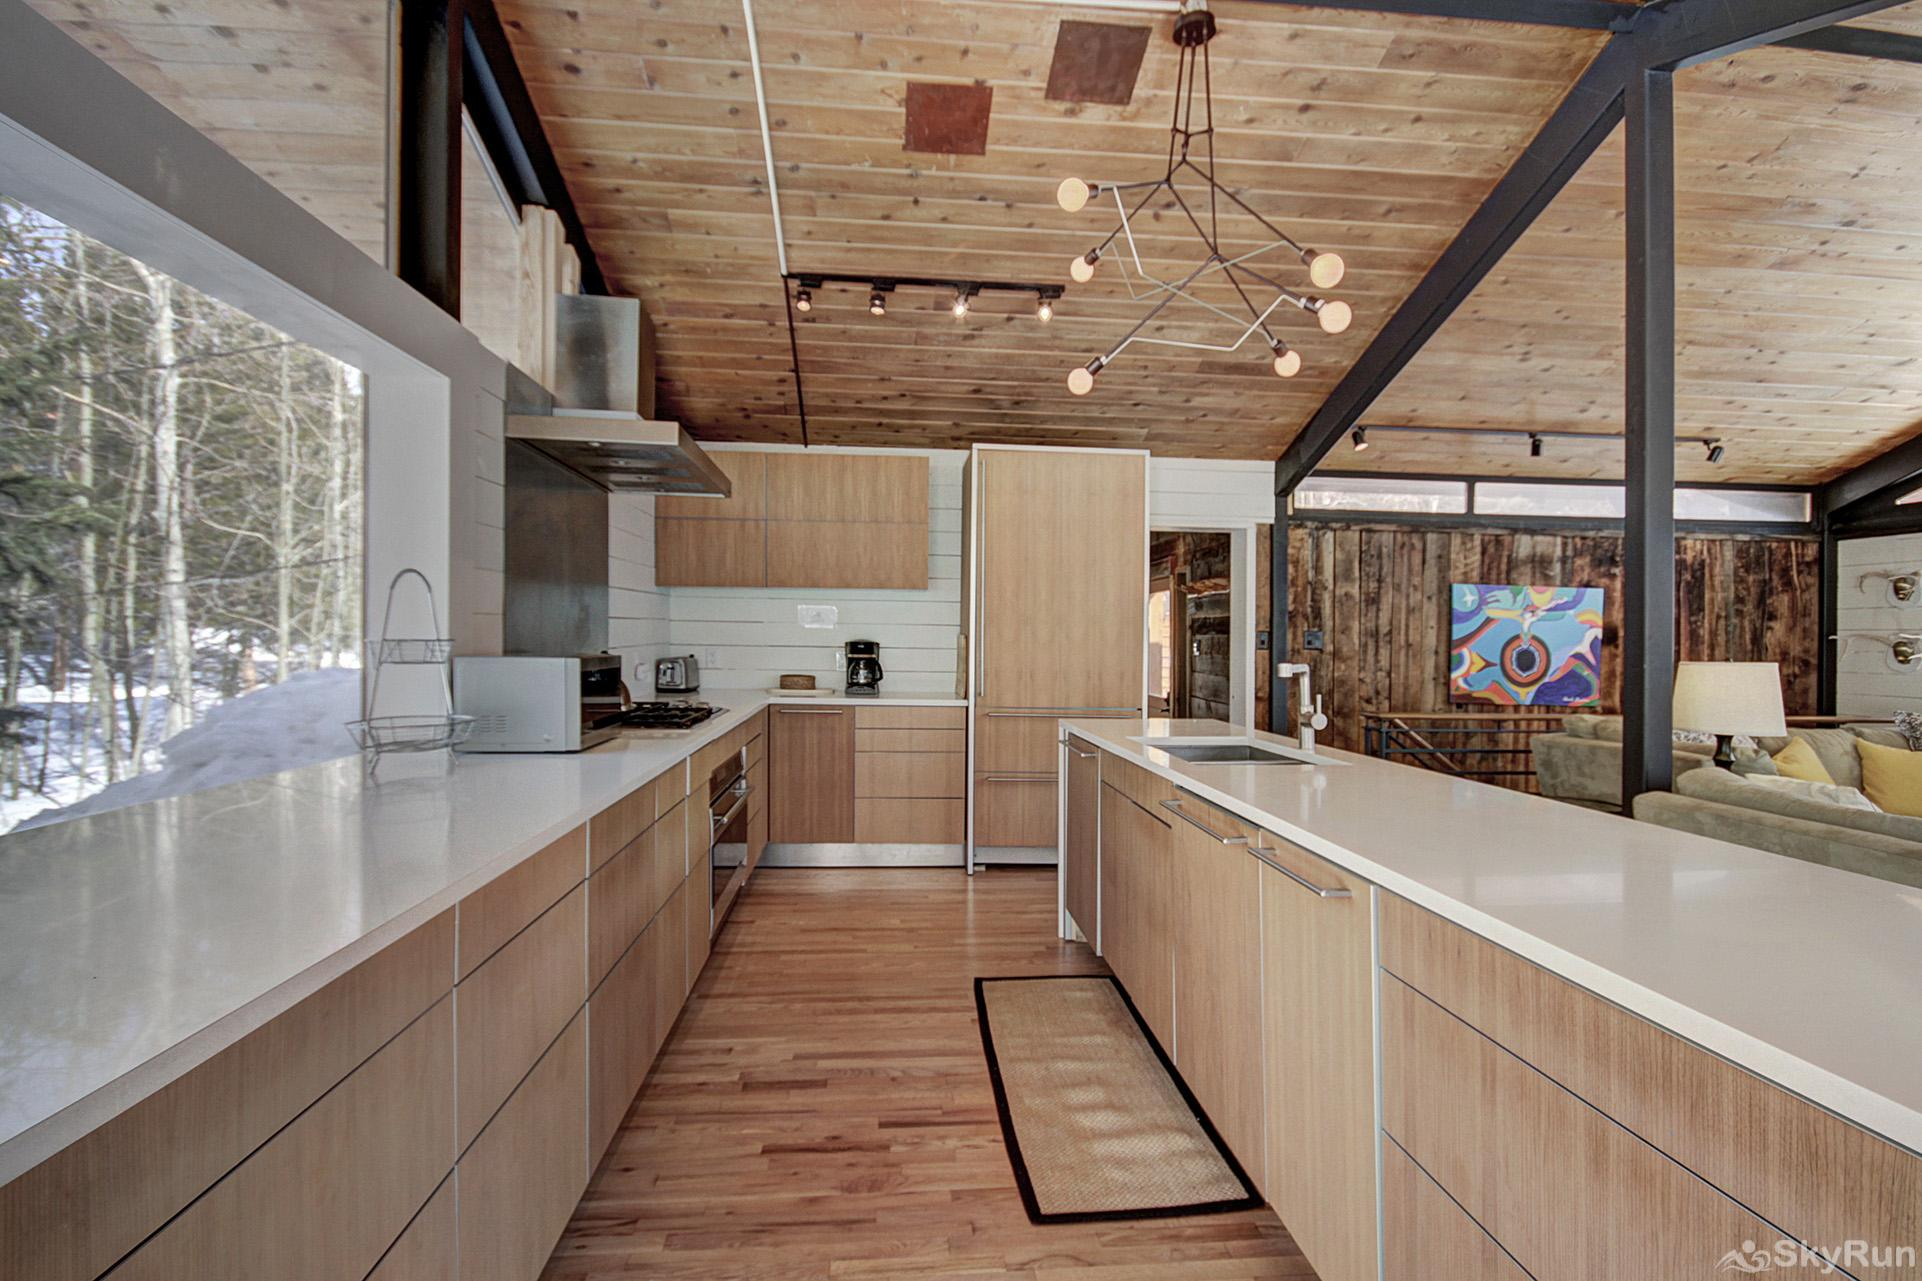 Elk Horn Cabin Beautifully remodeled kitchen with modern appliances